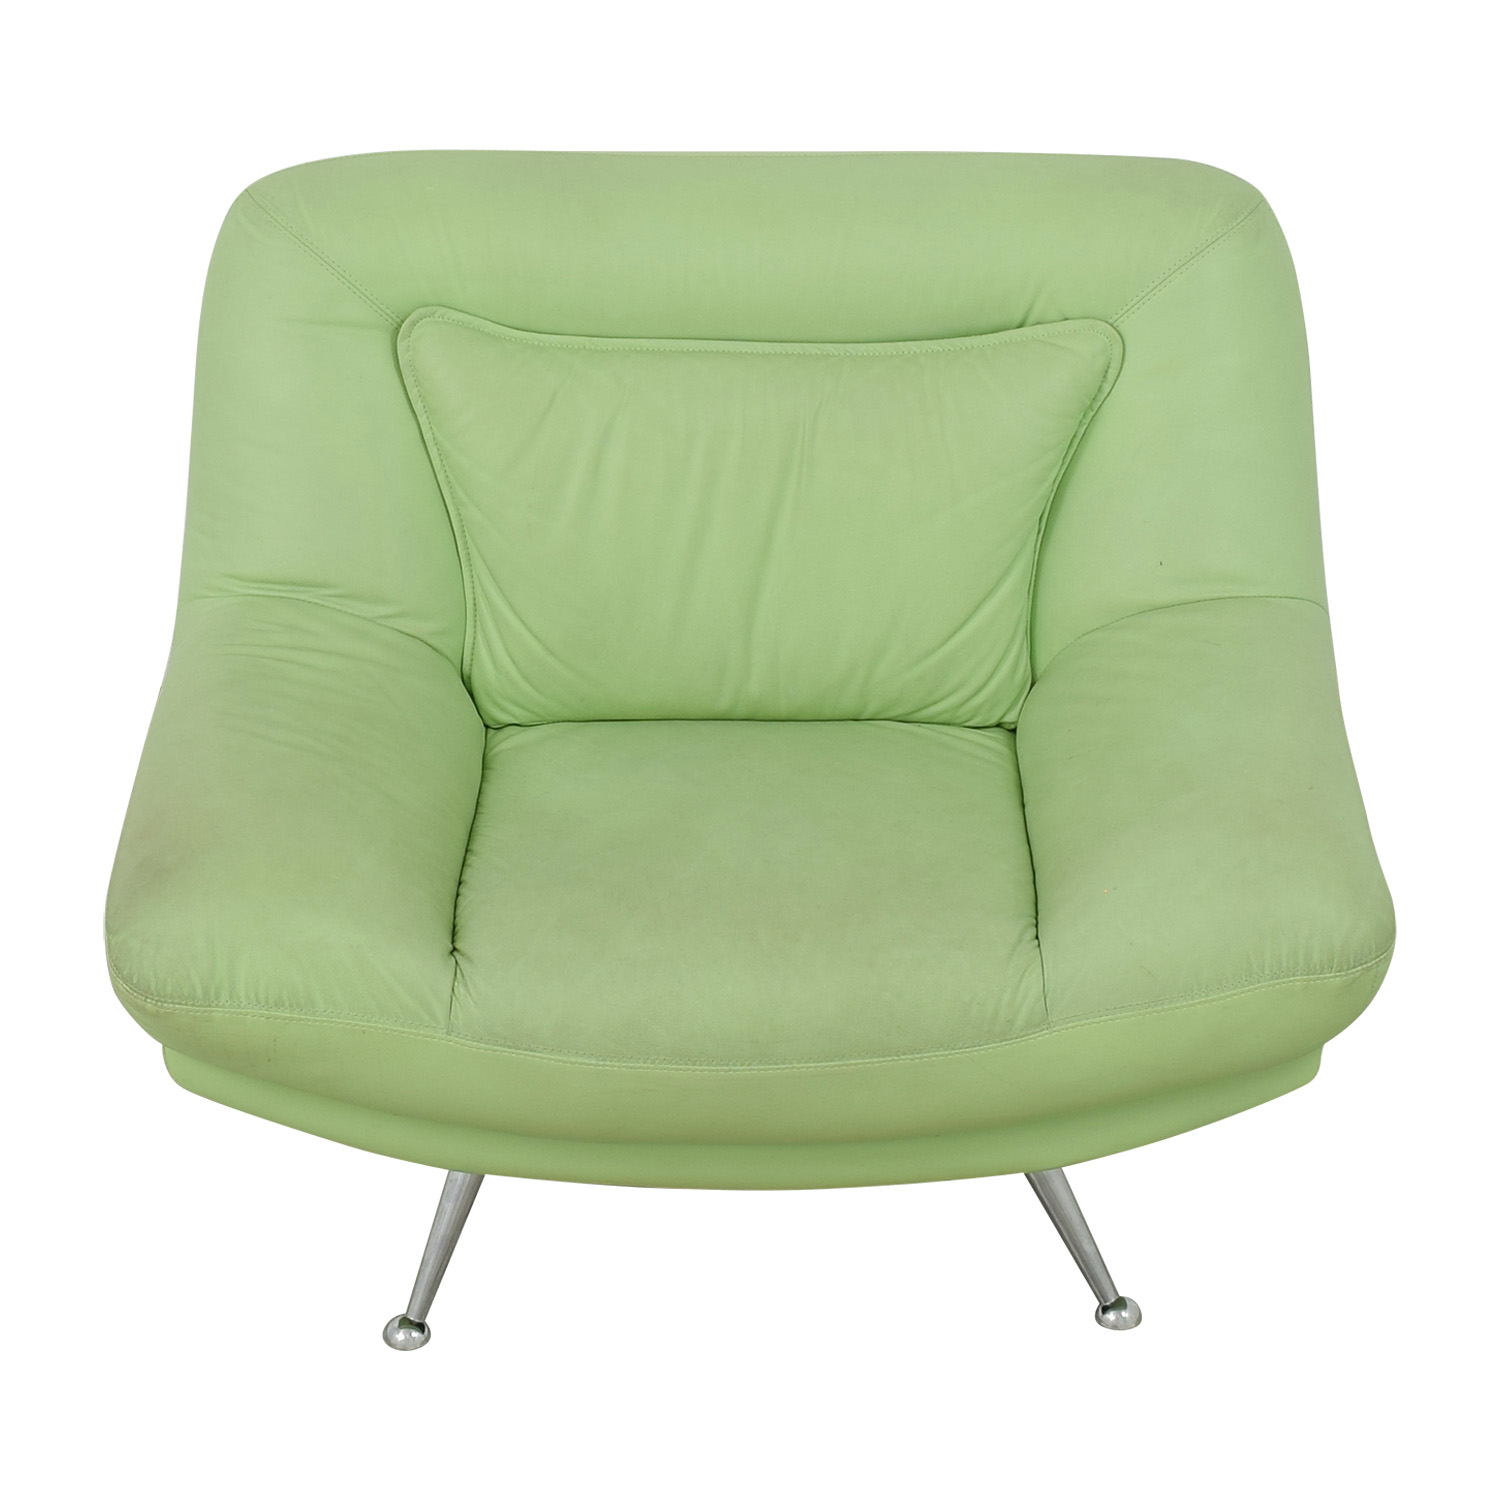 Italian Surf Green Leather Accent Chair coupon